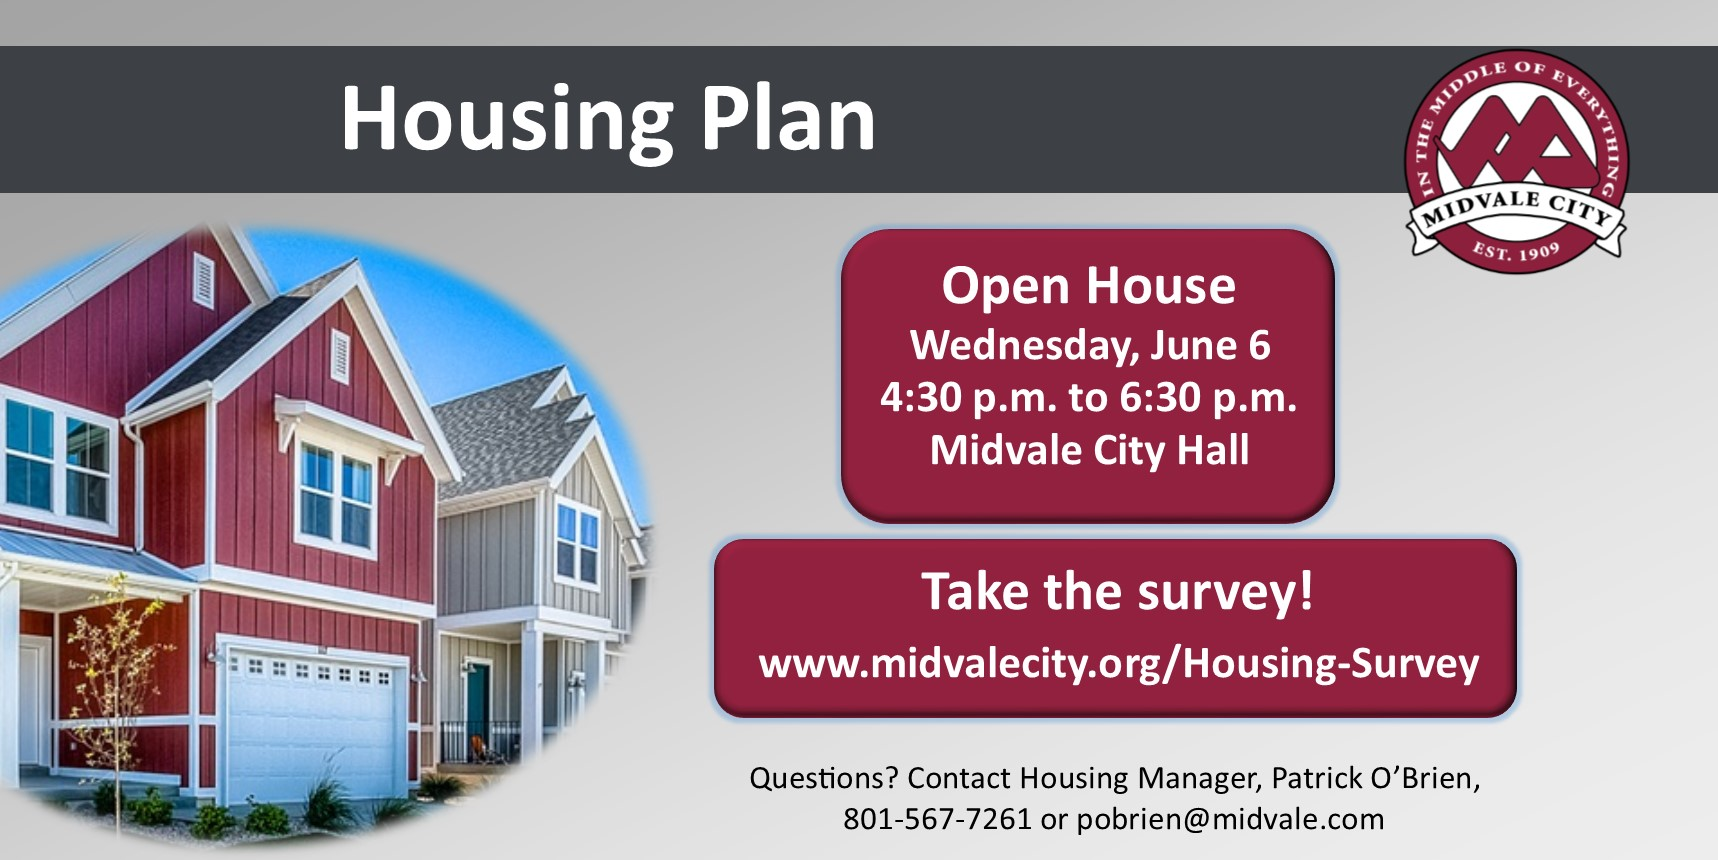 Housing Plan Open House and Survey